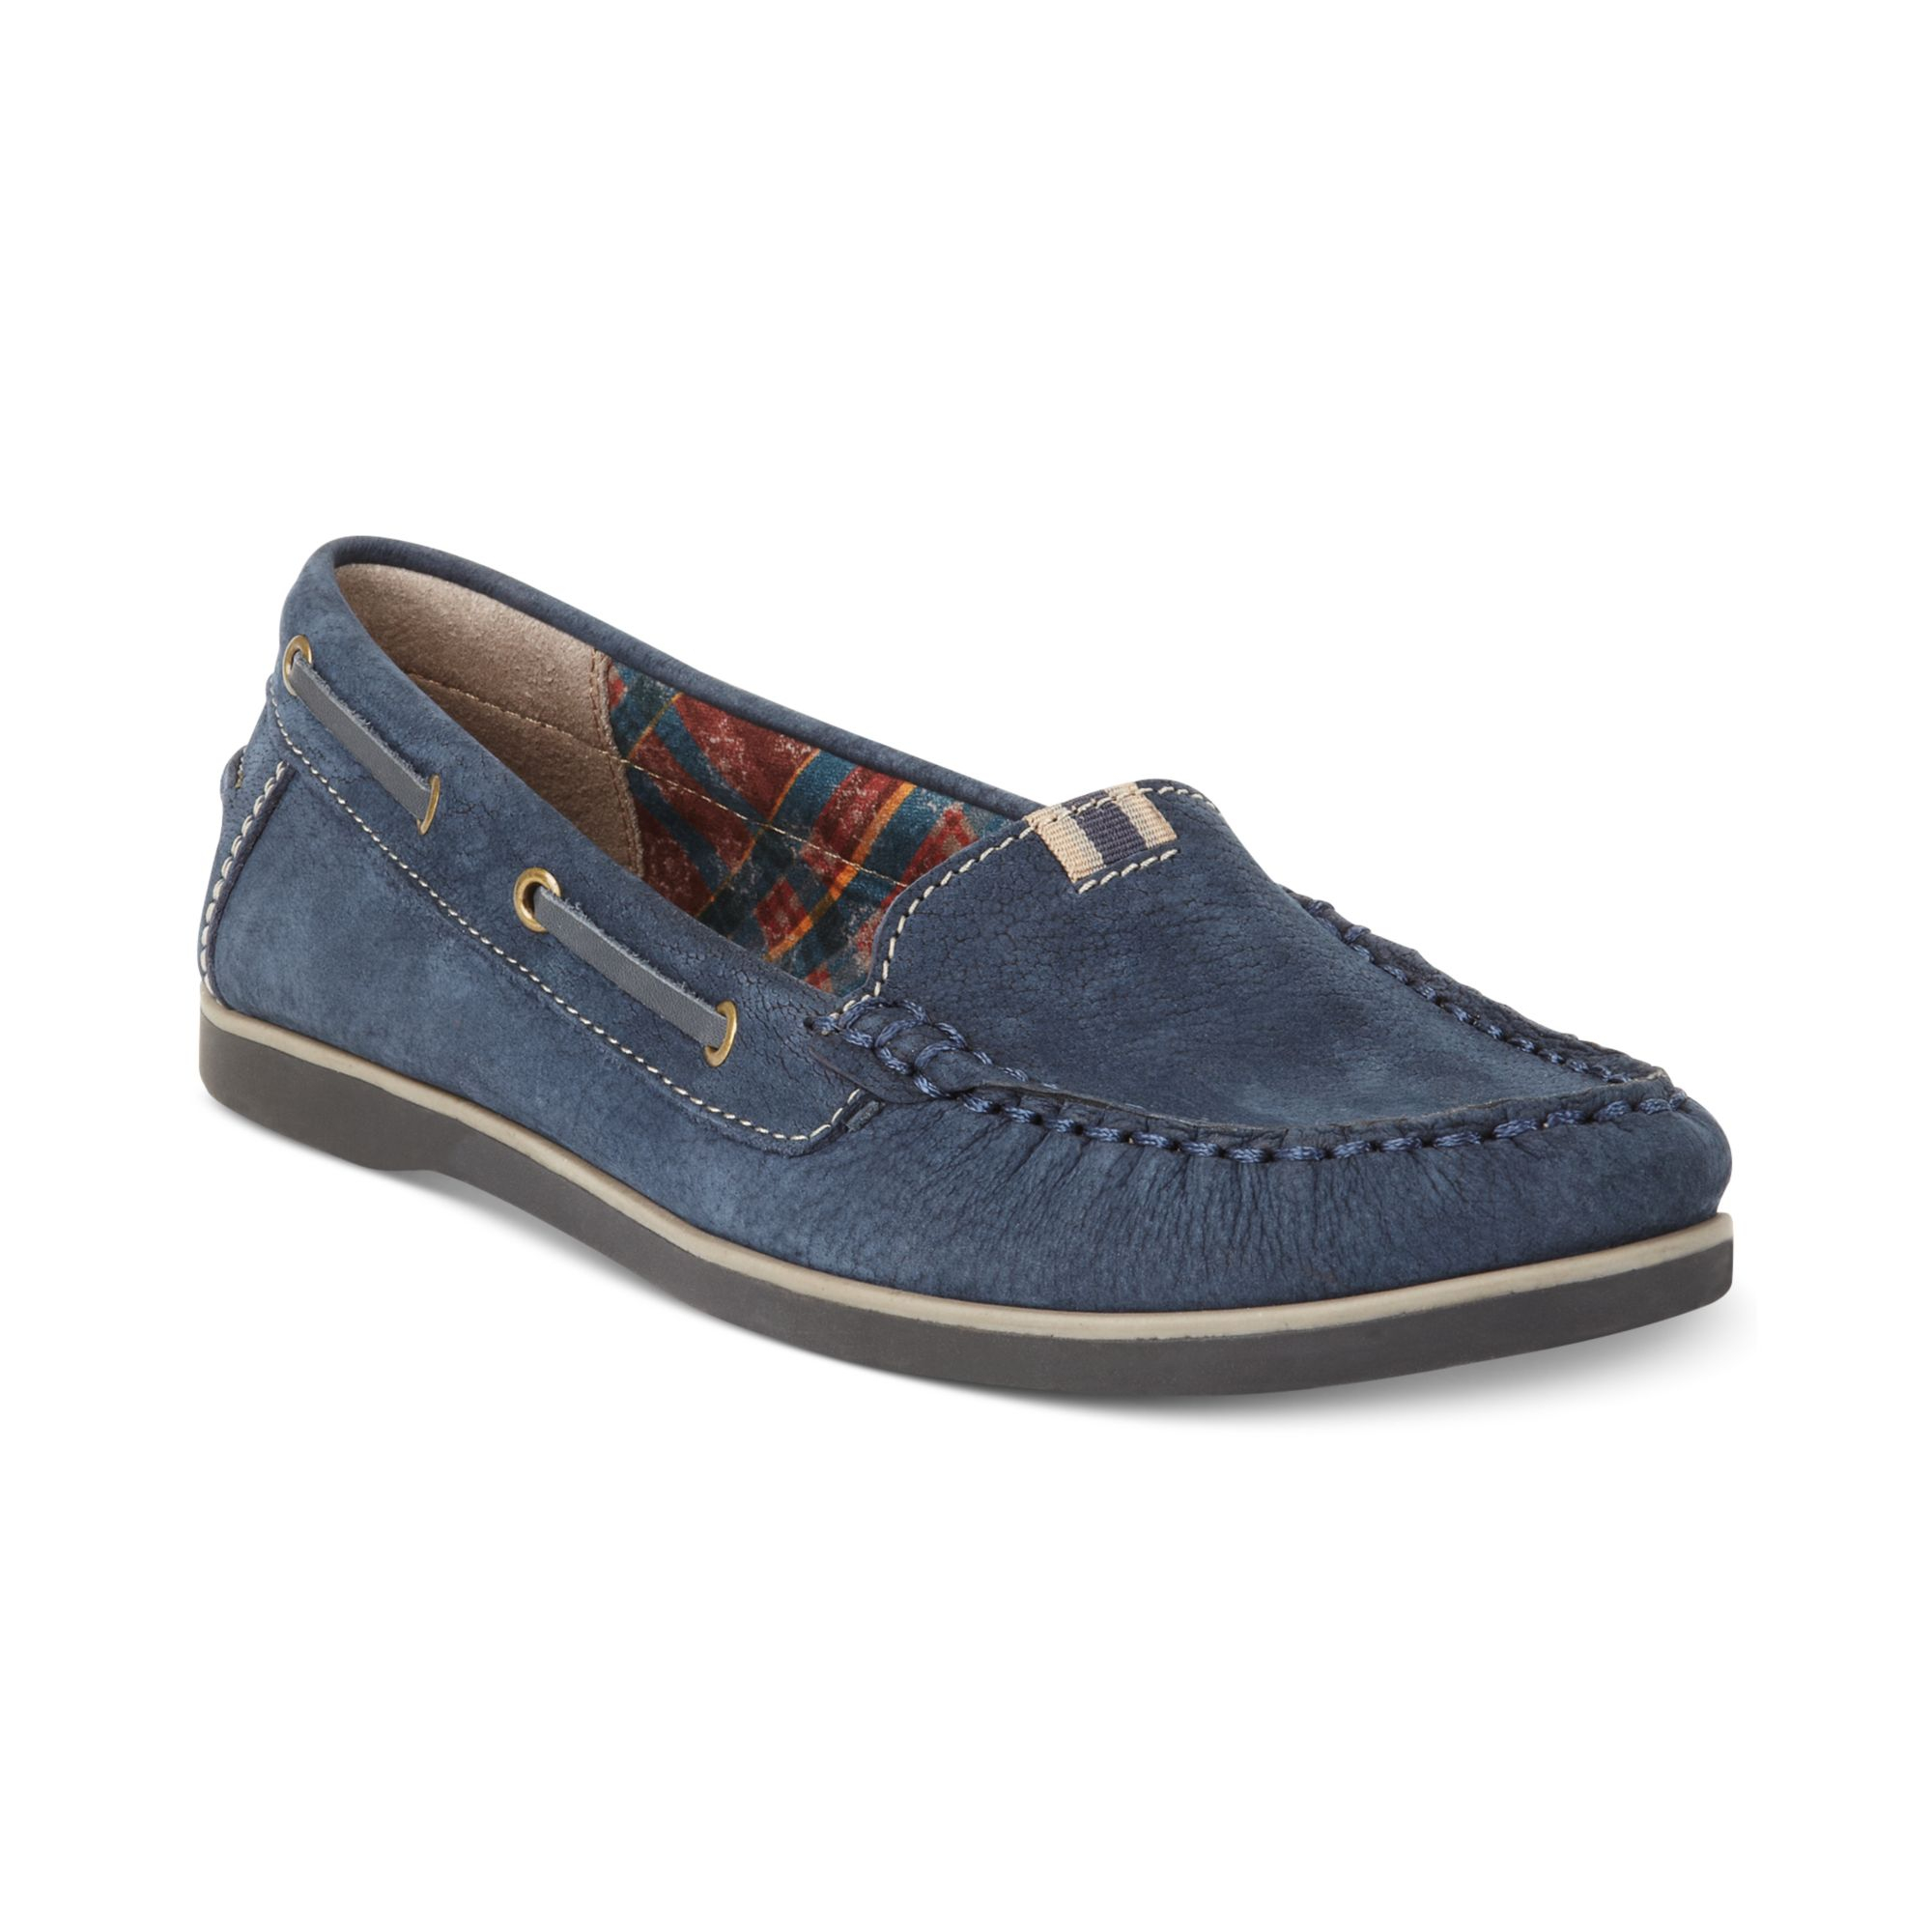 Naturalizer Hanover Boat Shoes in Blue (Navy Nubuck